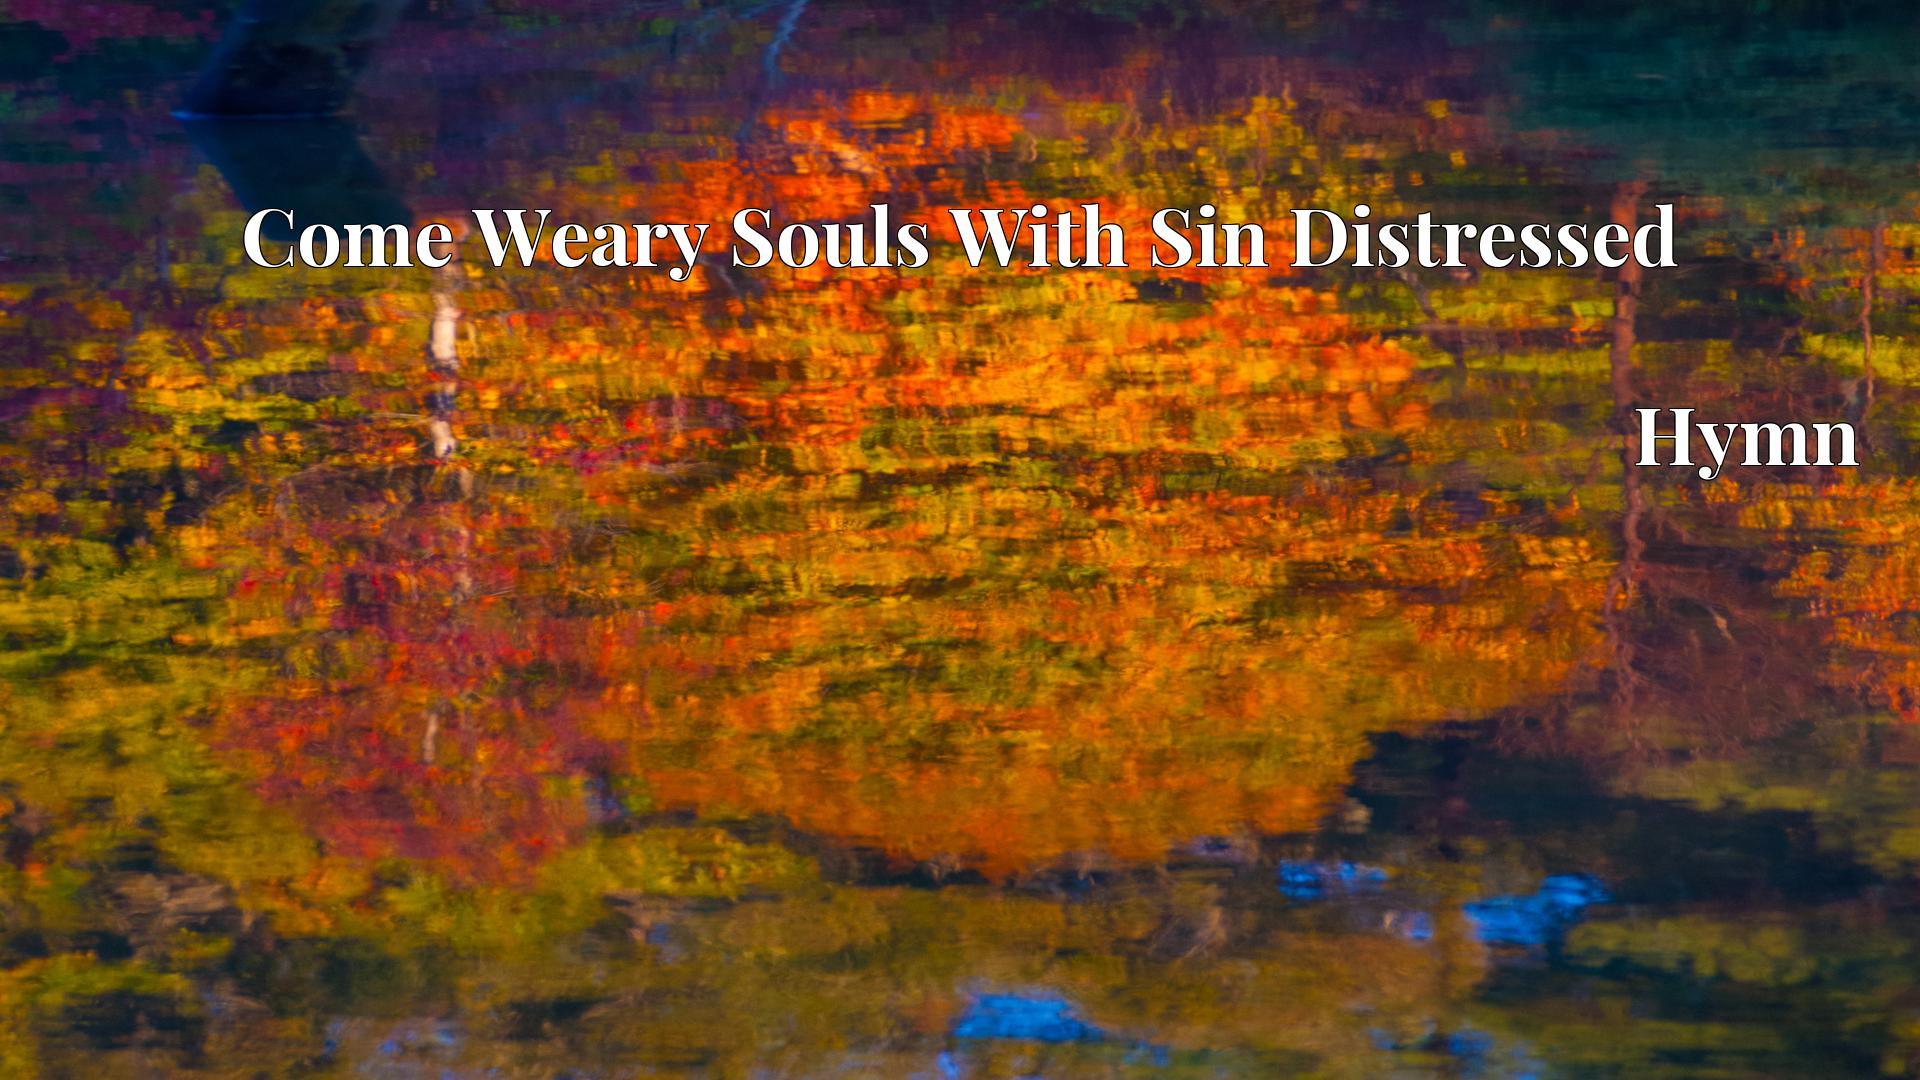 Come Weary Souls With Sin Distressed - Hymn